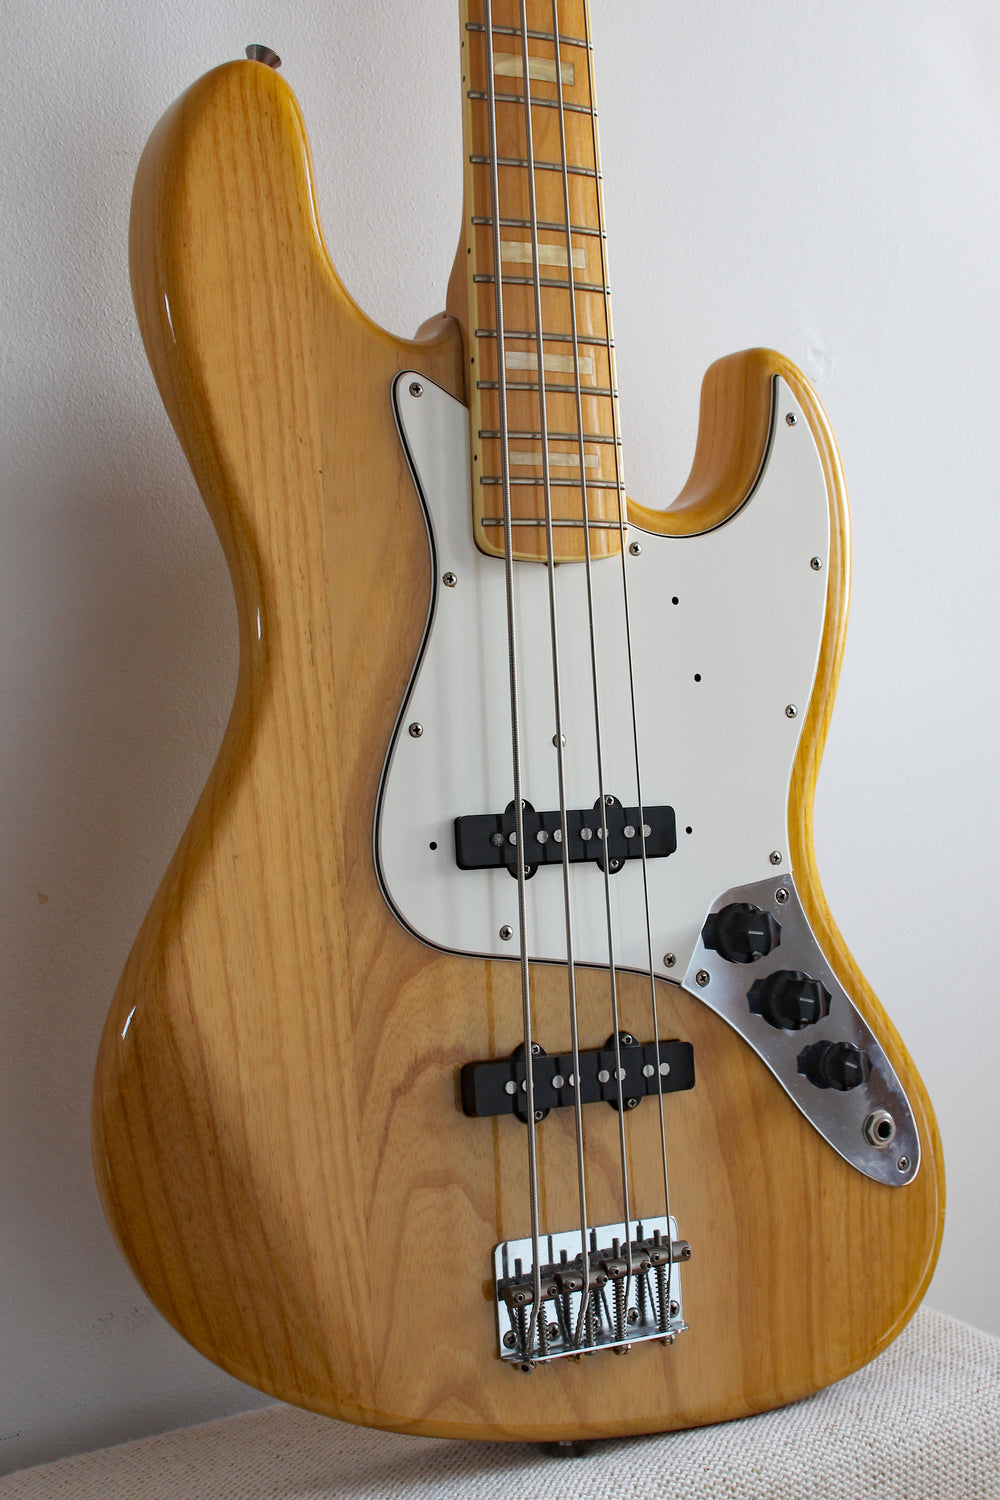 Fender Jazz Bass Used : used fender jazz bass 39 75 reissue natural topshelf instruments ~ Hamham.info Haus und Dekorationen